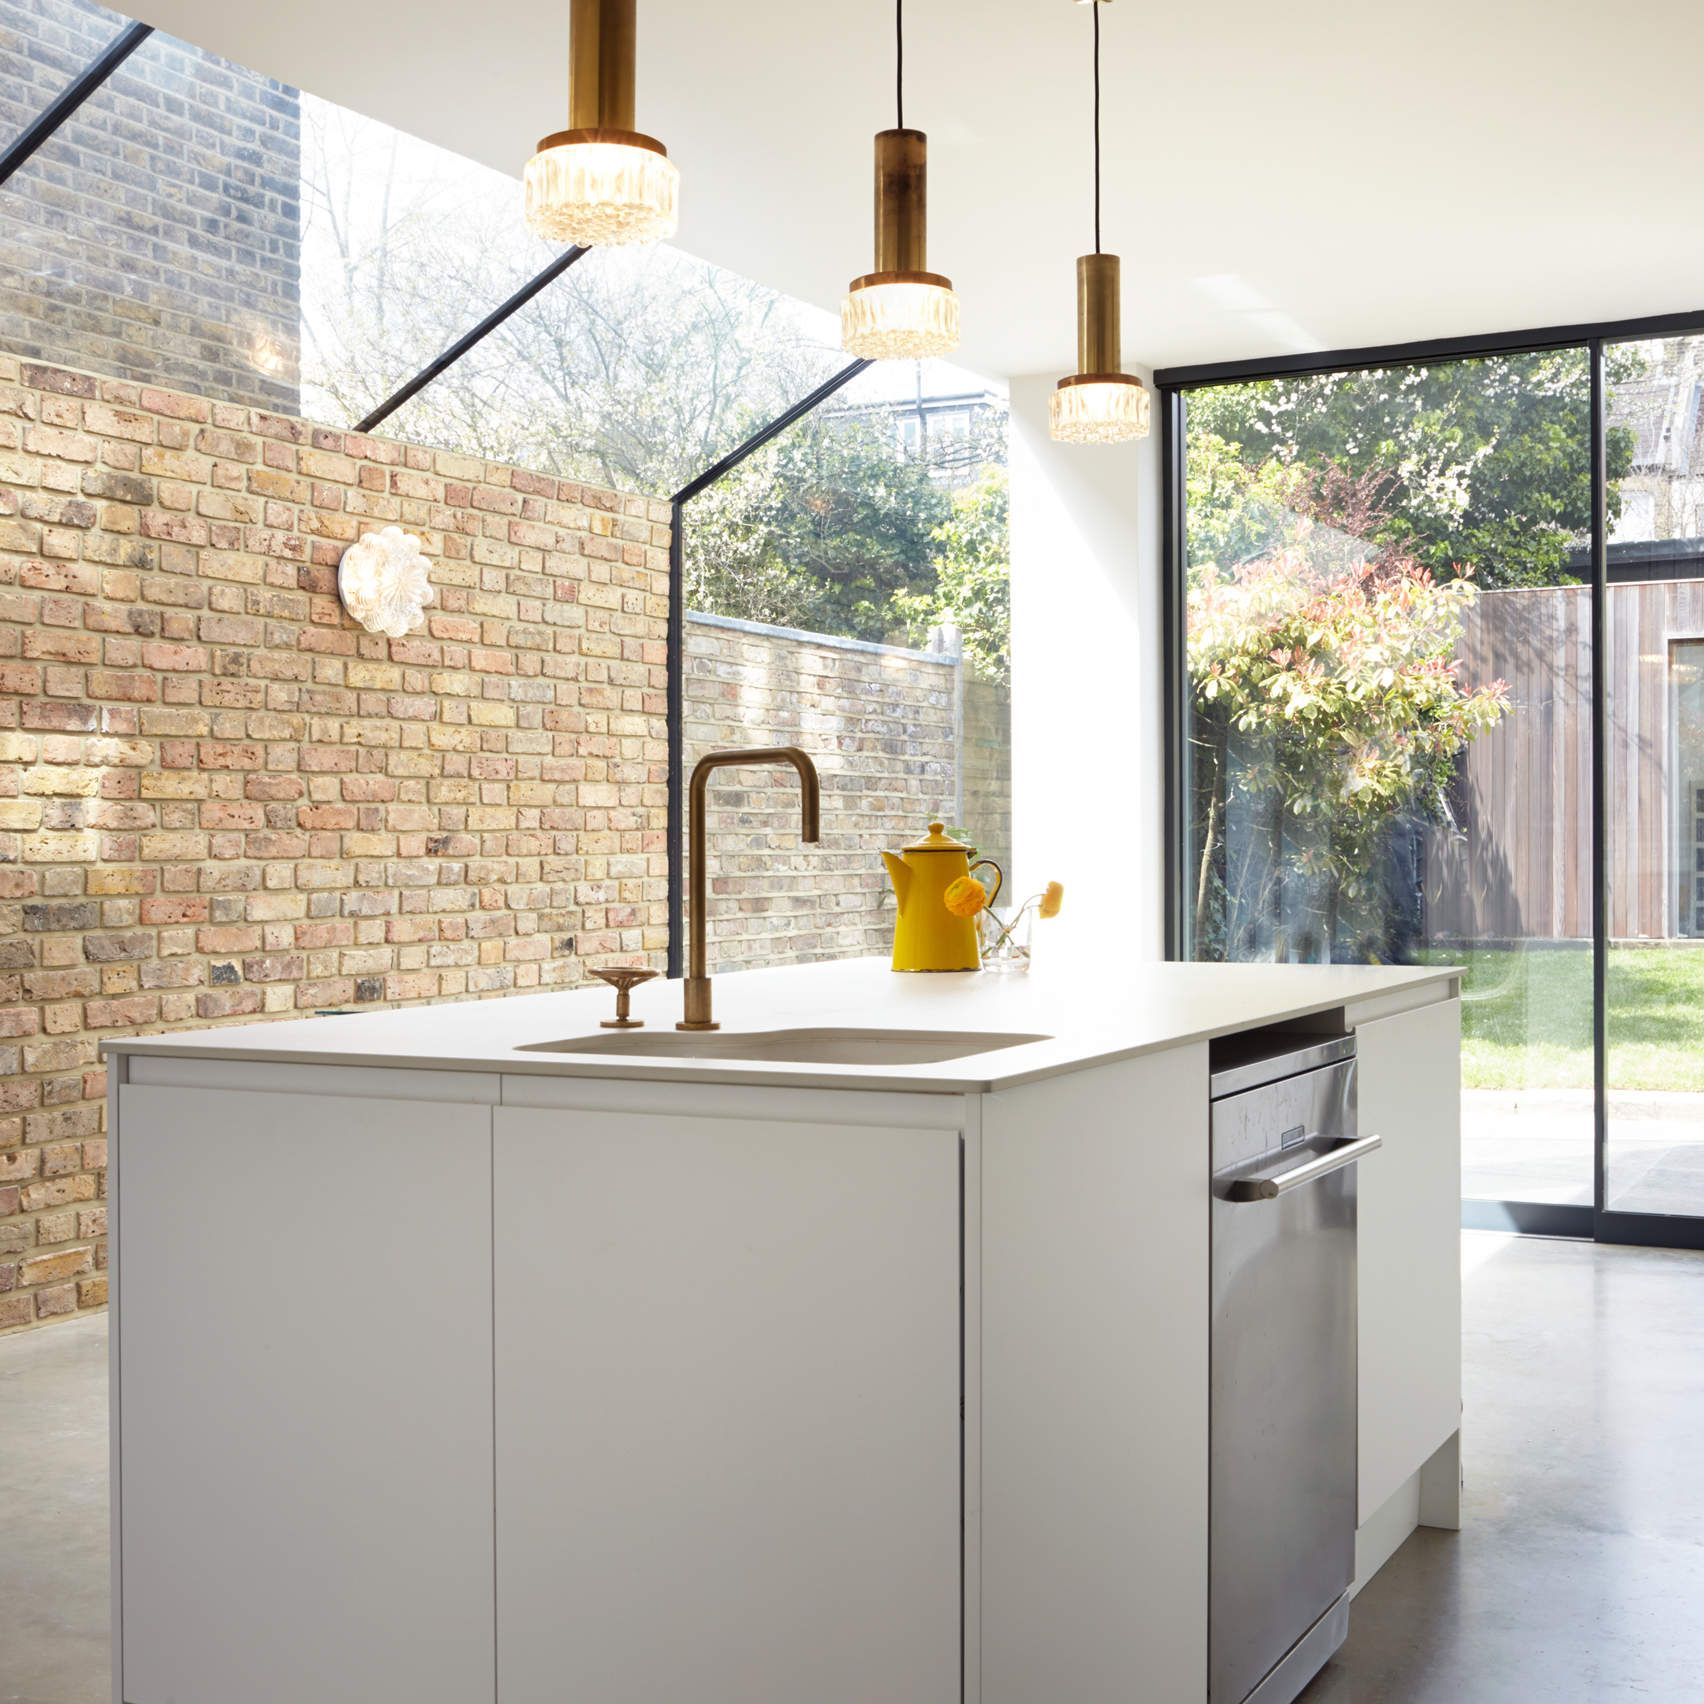 10 of the best london house extensions from dezeen s for London kitchen decor